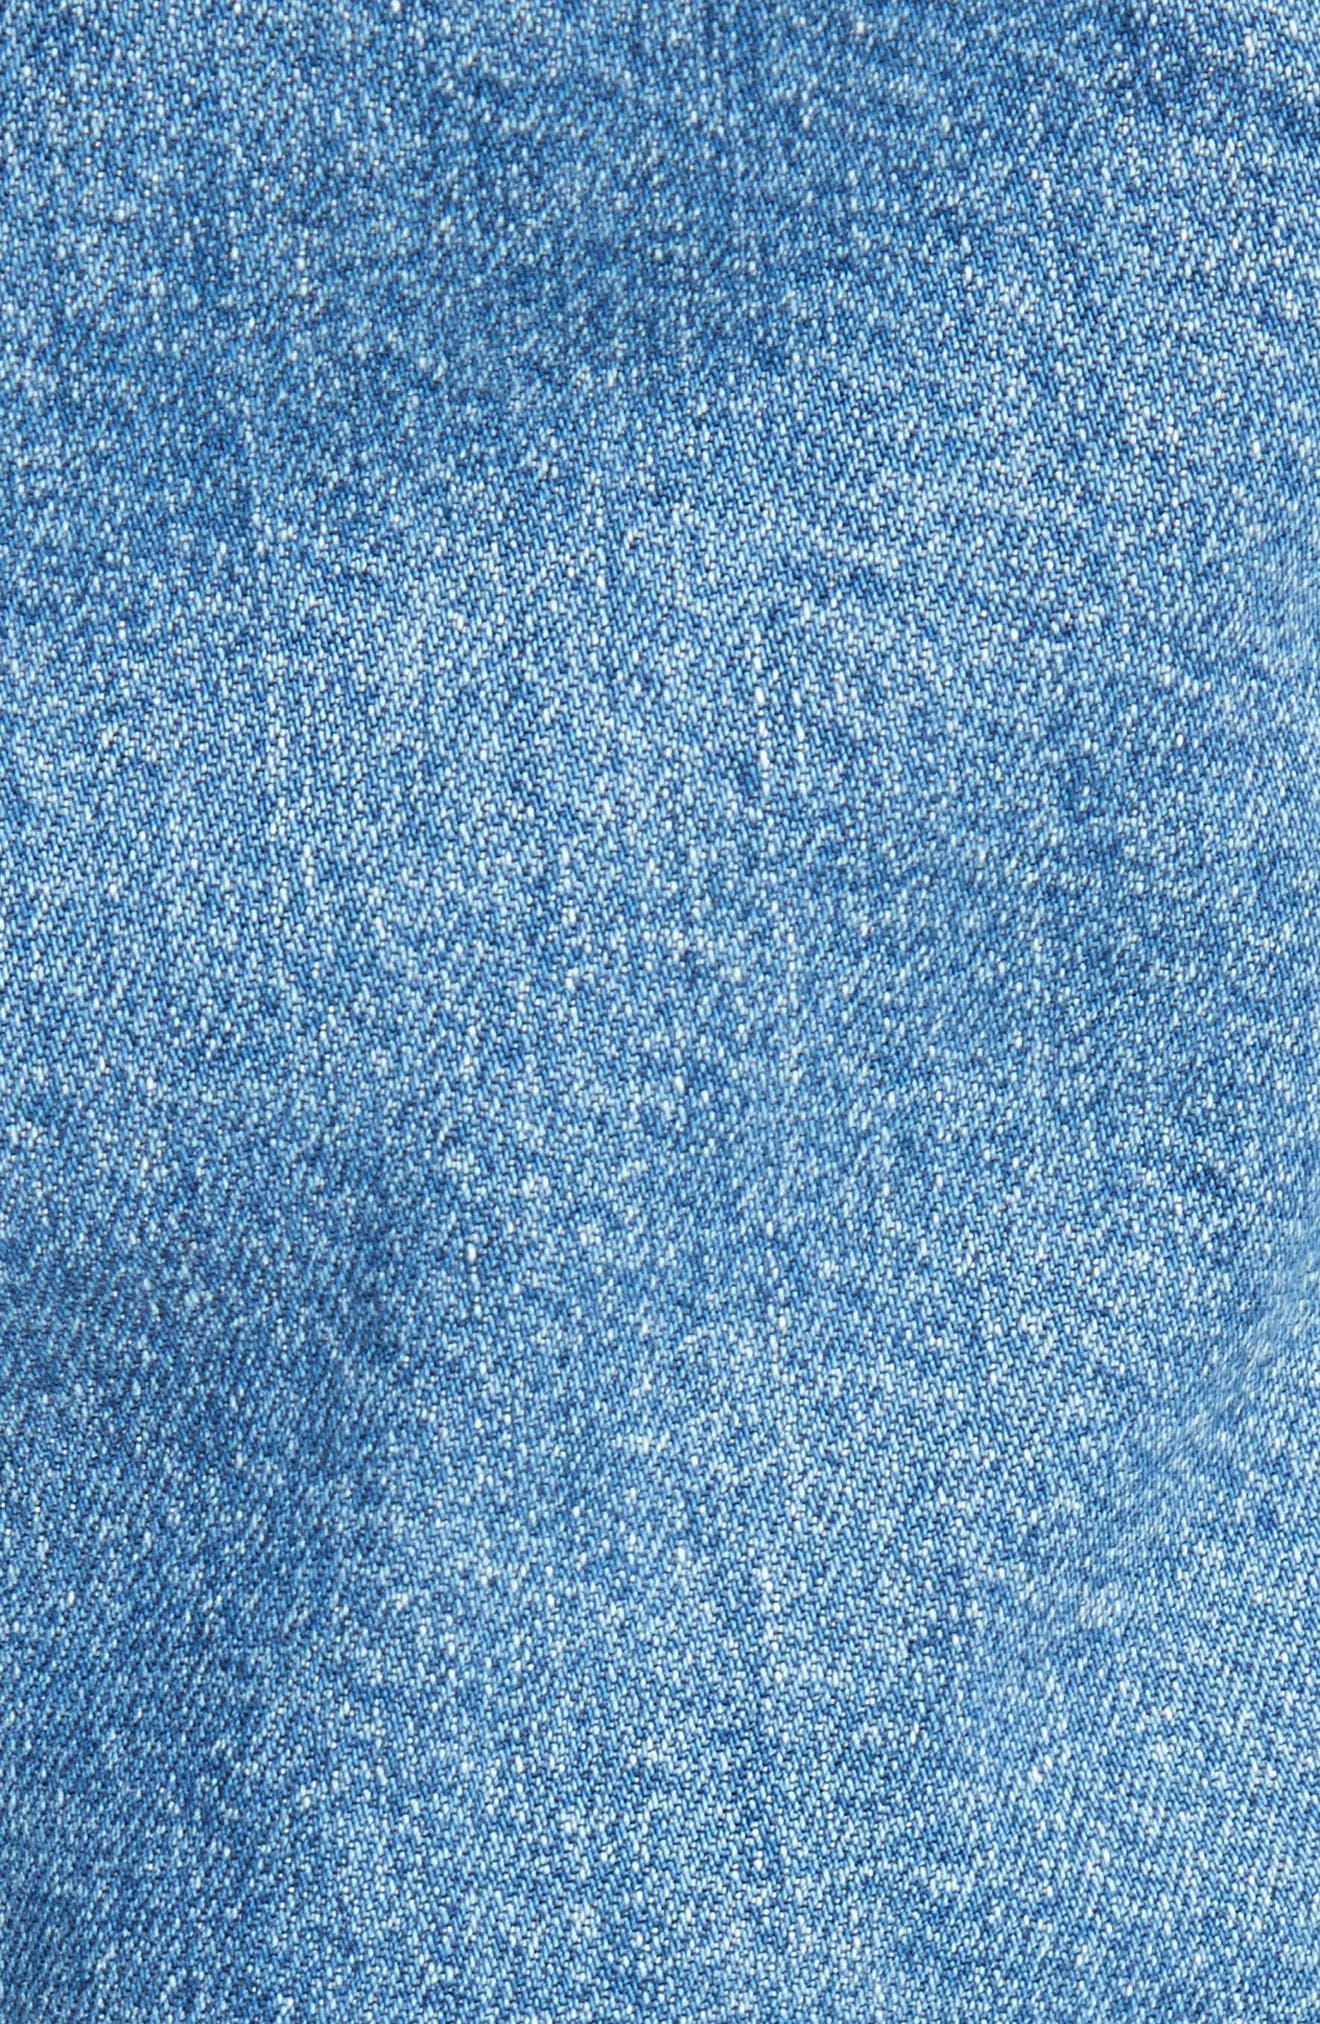 Xenia Ruched Crop Jeans,                             Alternate thumbnail 6, color,                             400